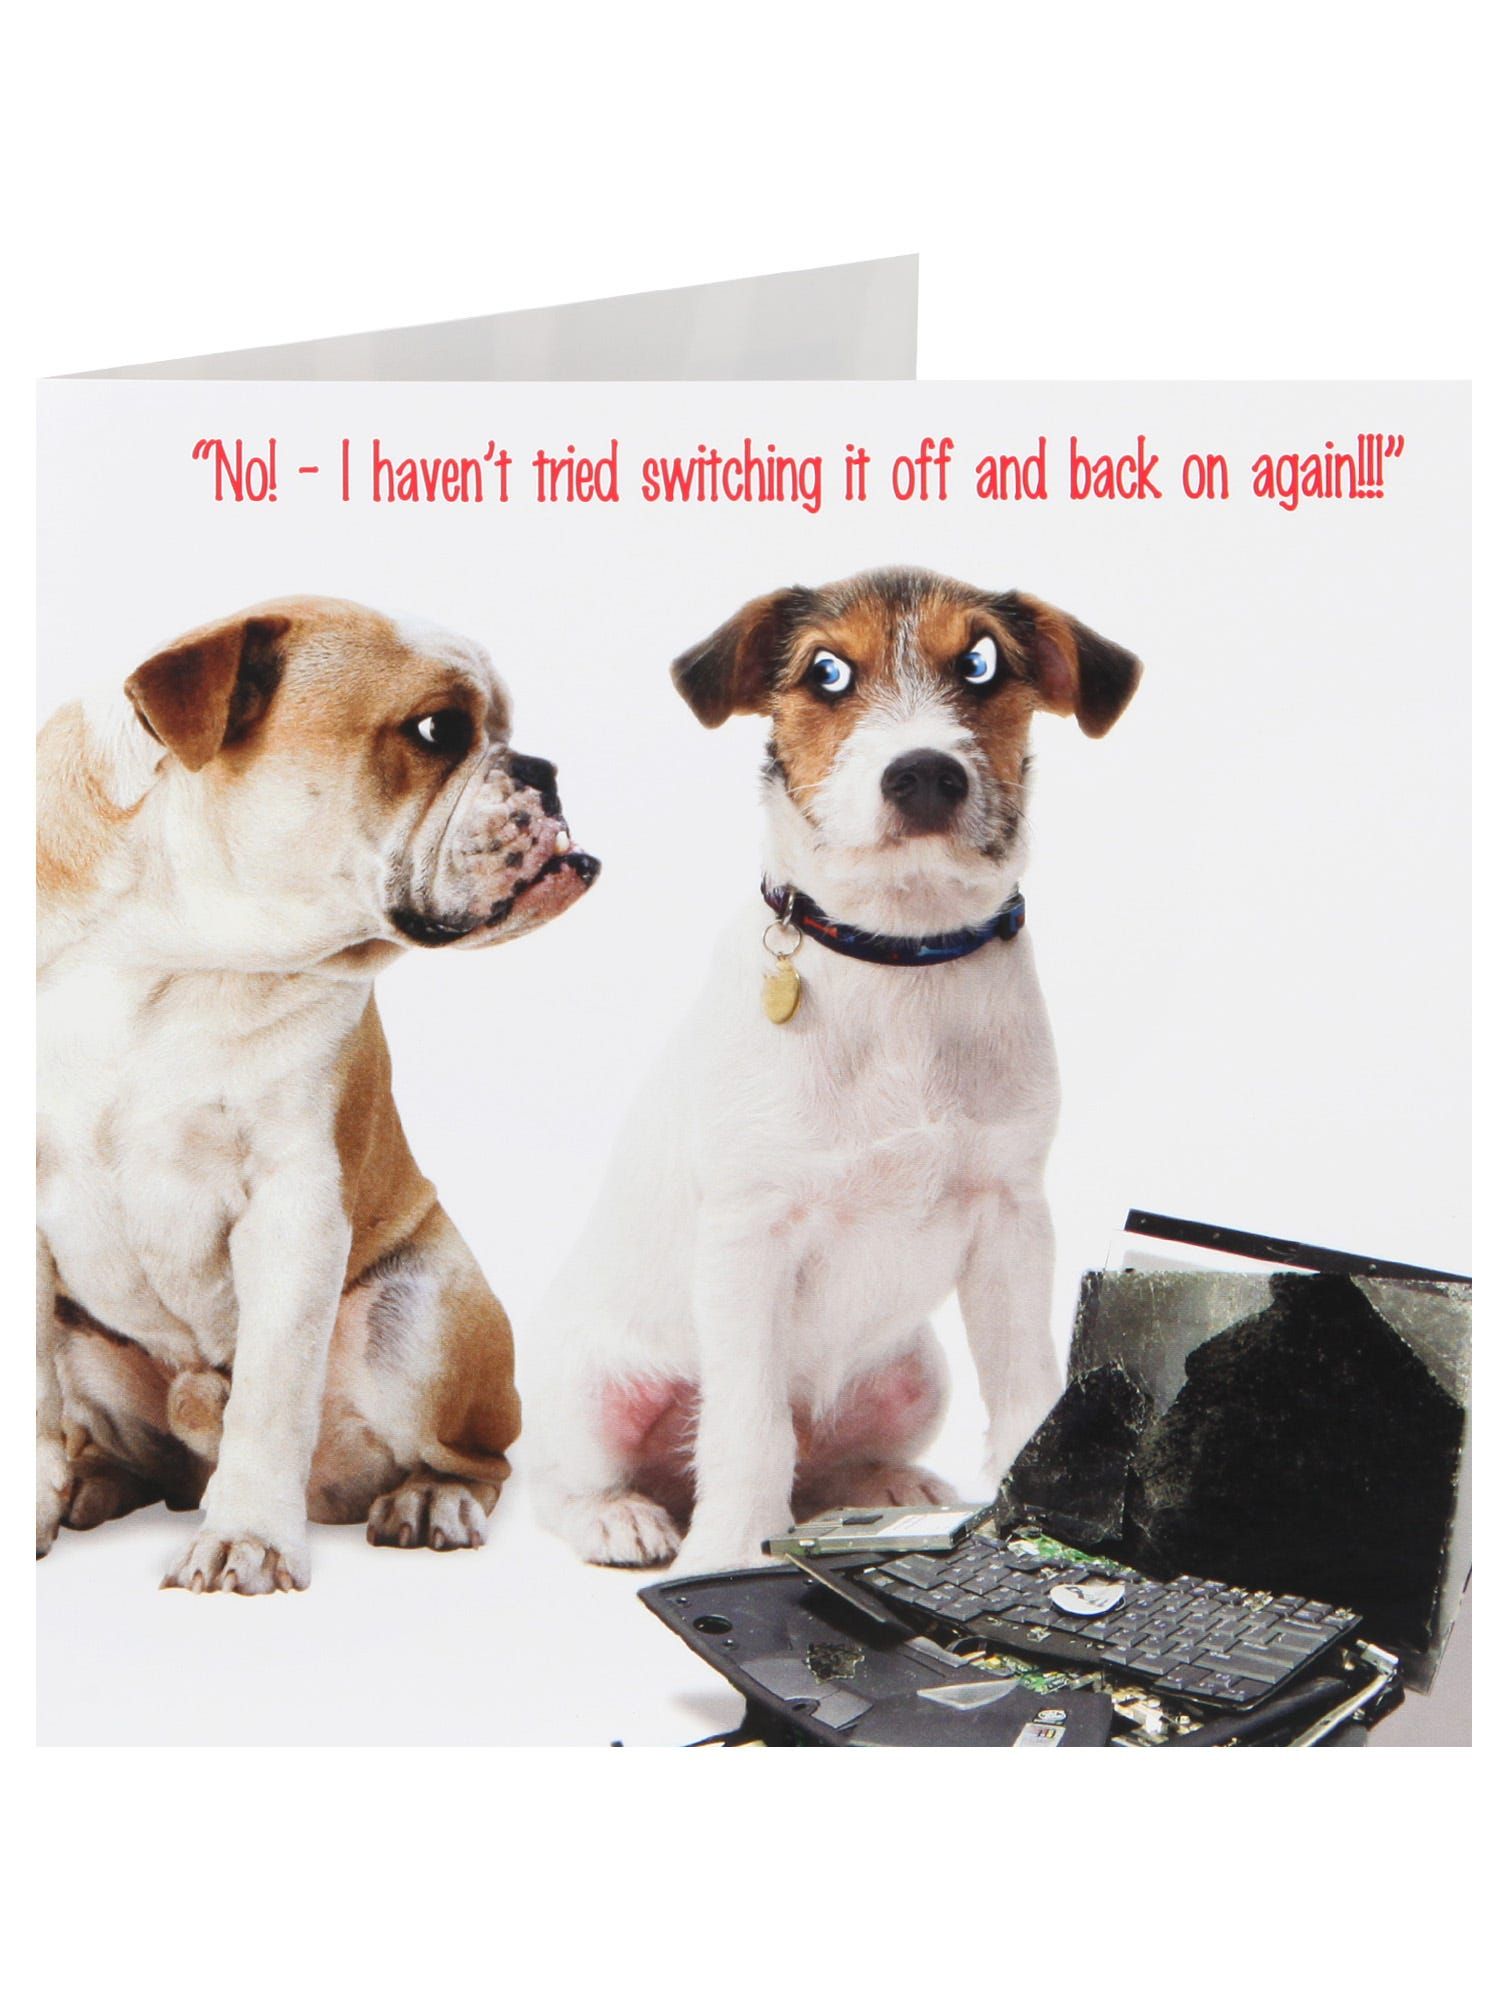 Dogs With A Damaged Laptop Humour Birthday Card <p>Ensure they have a smile on their face with this humorous card. Wishing them a lovely Birthday this year.</p>